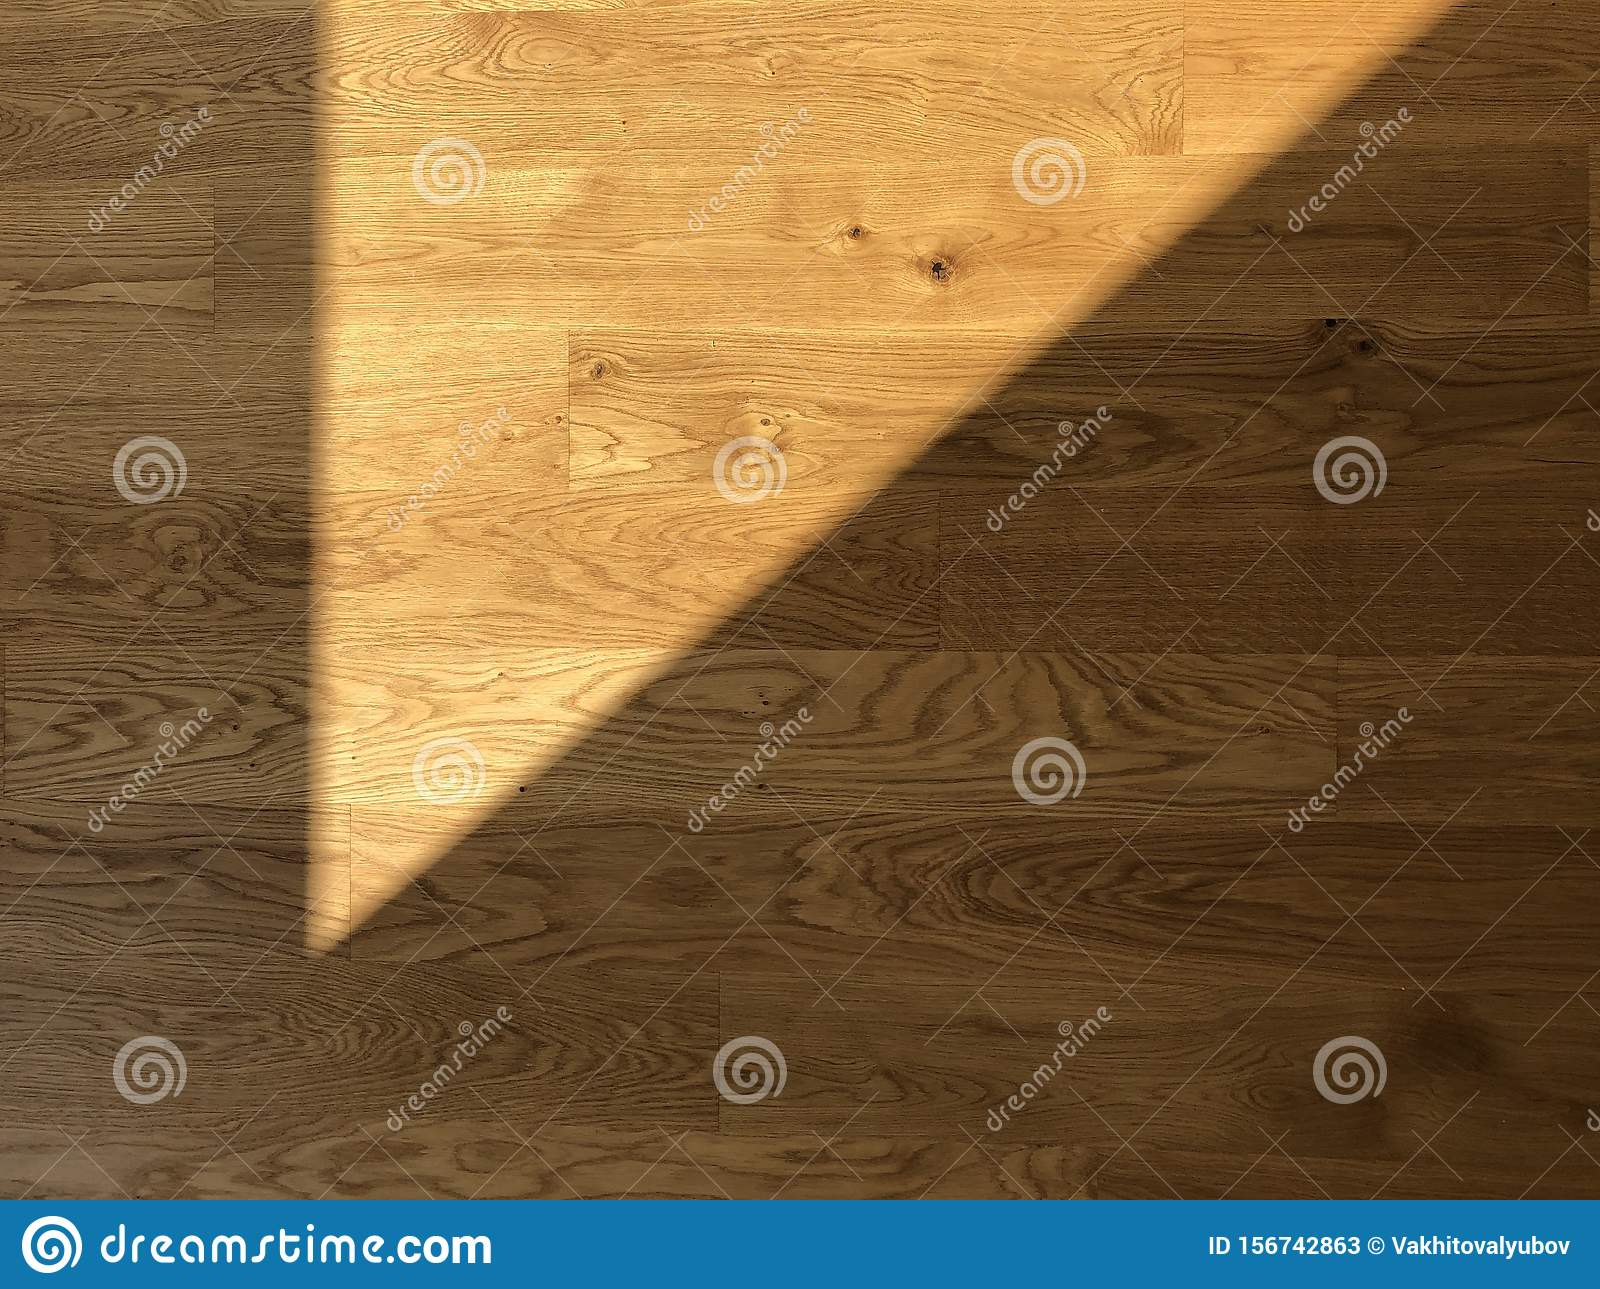 Shadow of the sunlight on parquet floor.